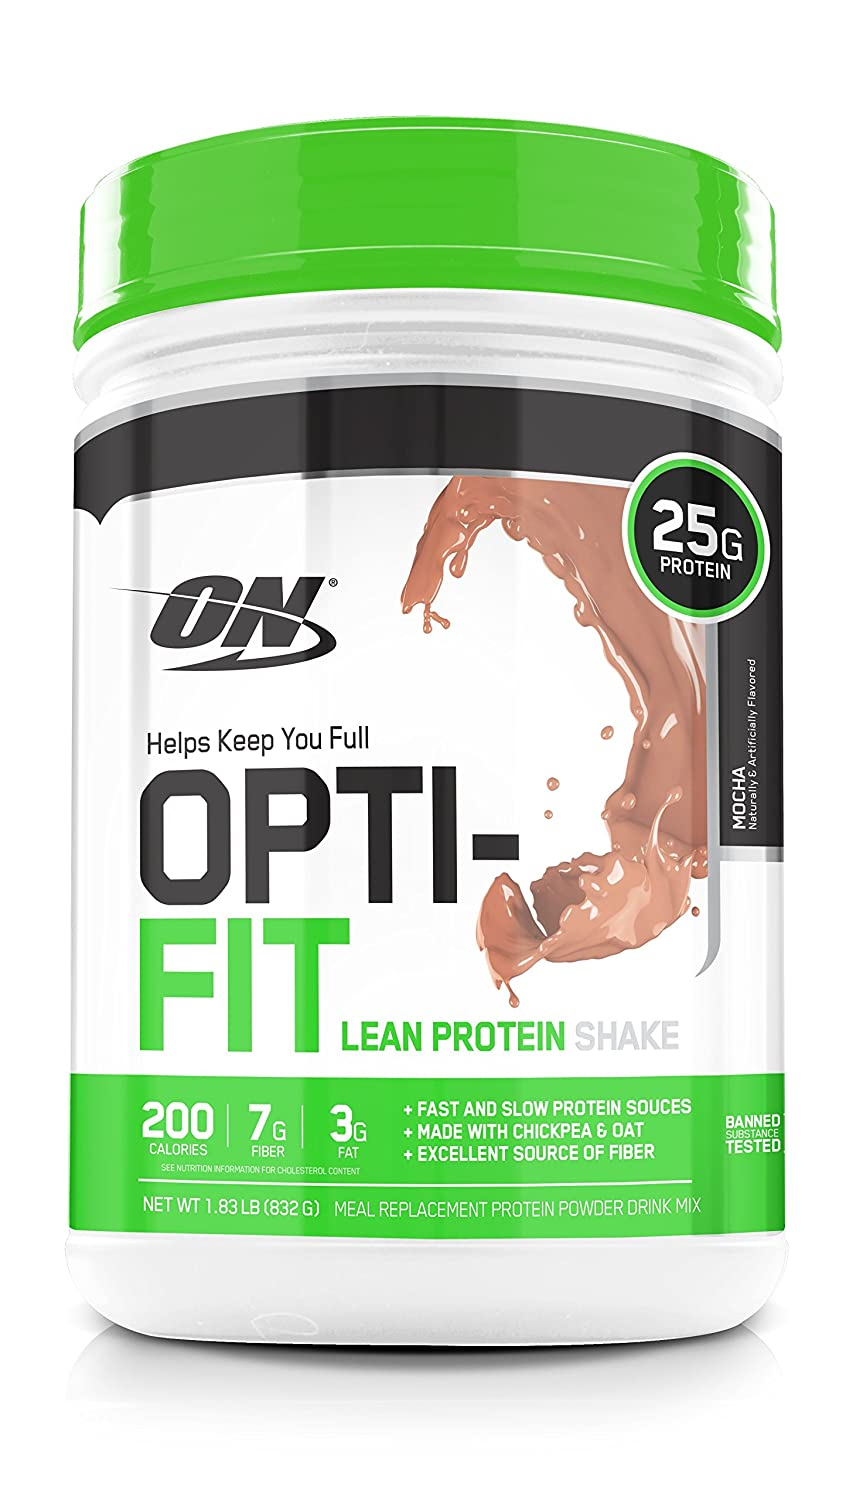 Amazon.com: Optimum Nutrition Opti-Fit Lean Protein Shake, Meal Replacement  Powder, Mocha, 1.83 Pound: Health & Personal Care